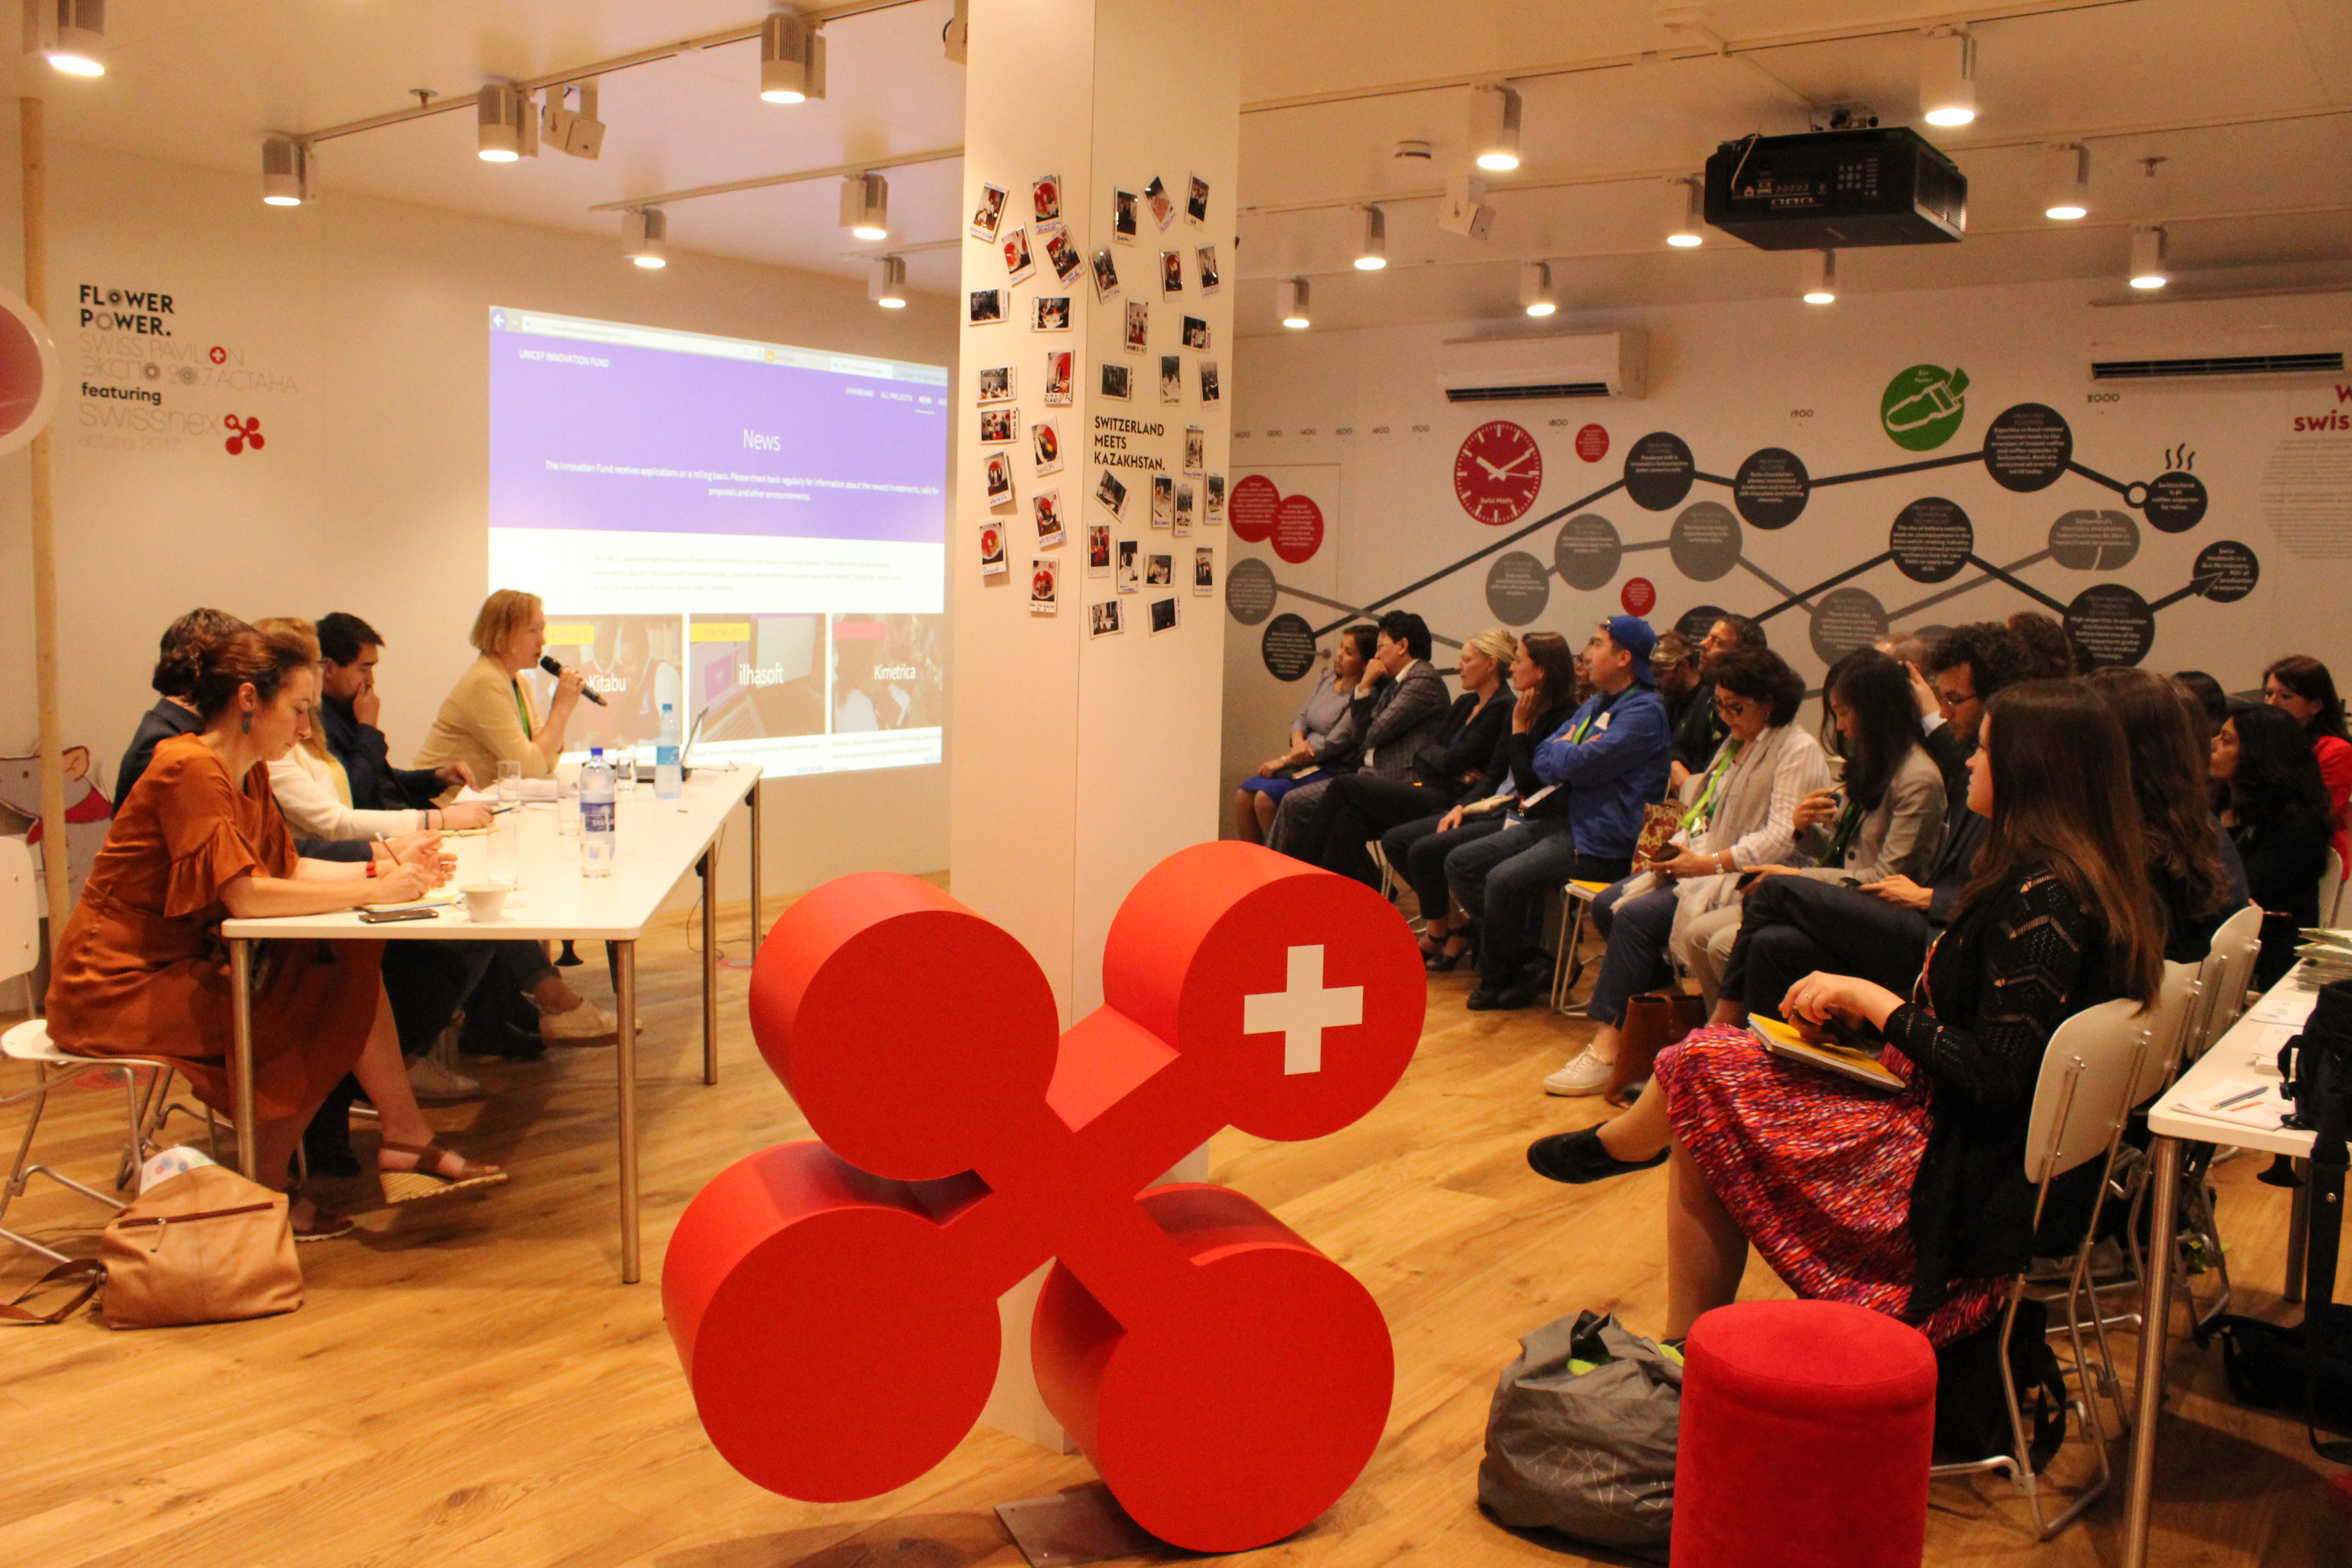 Conference at the swissnex Lab